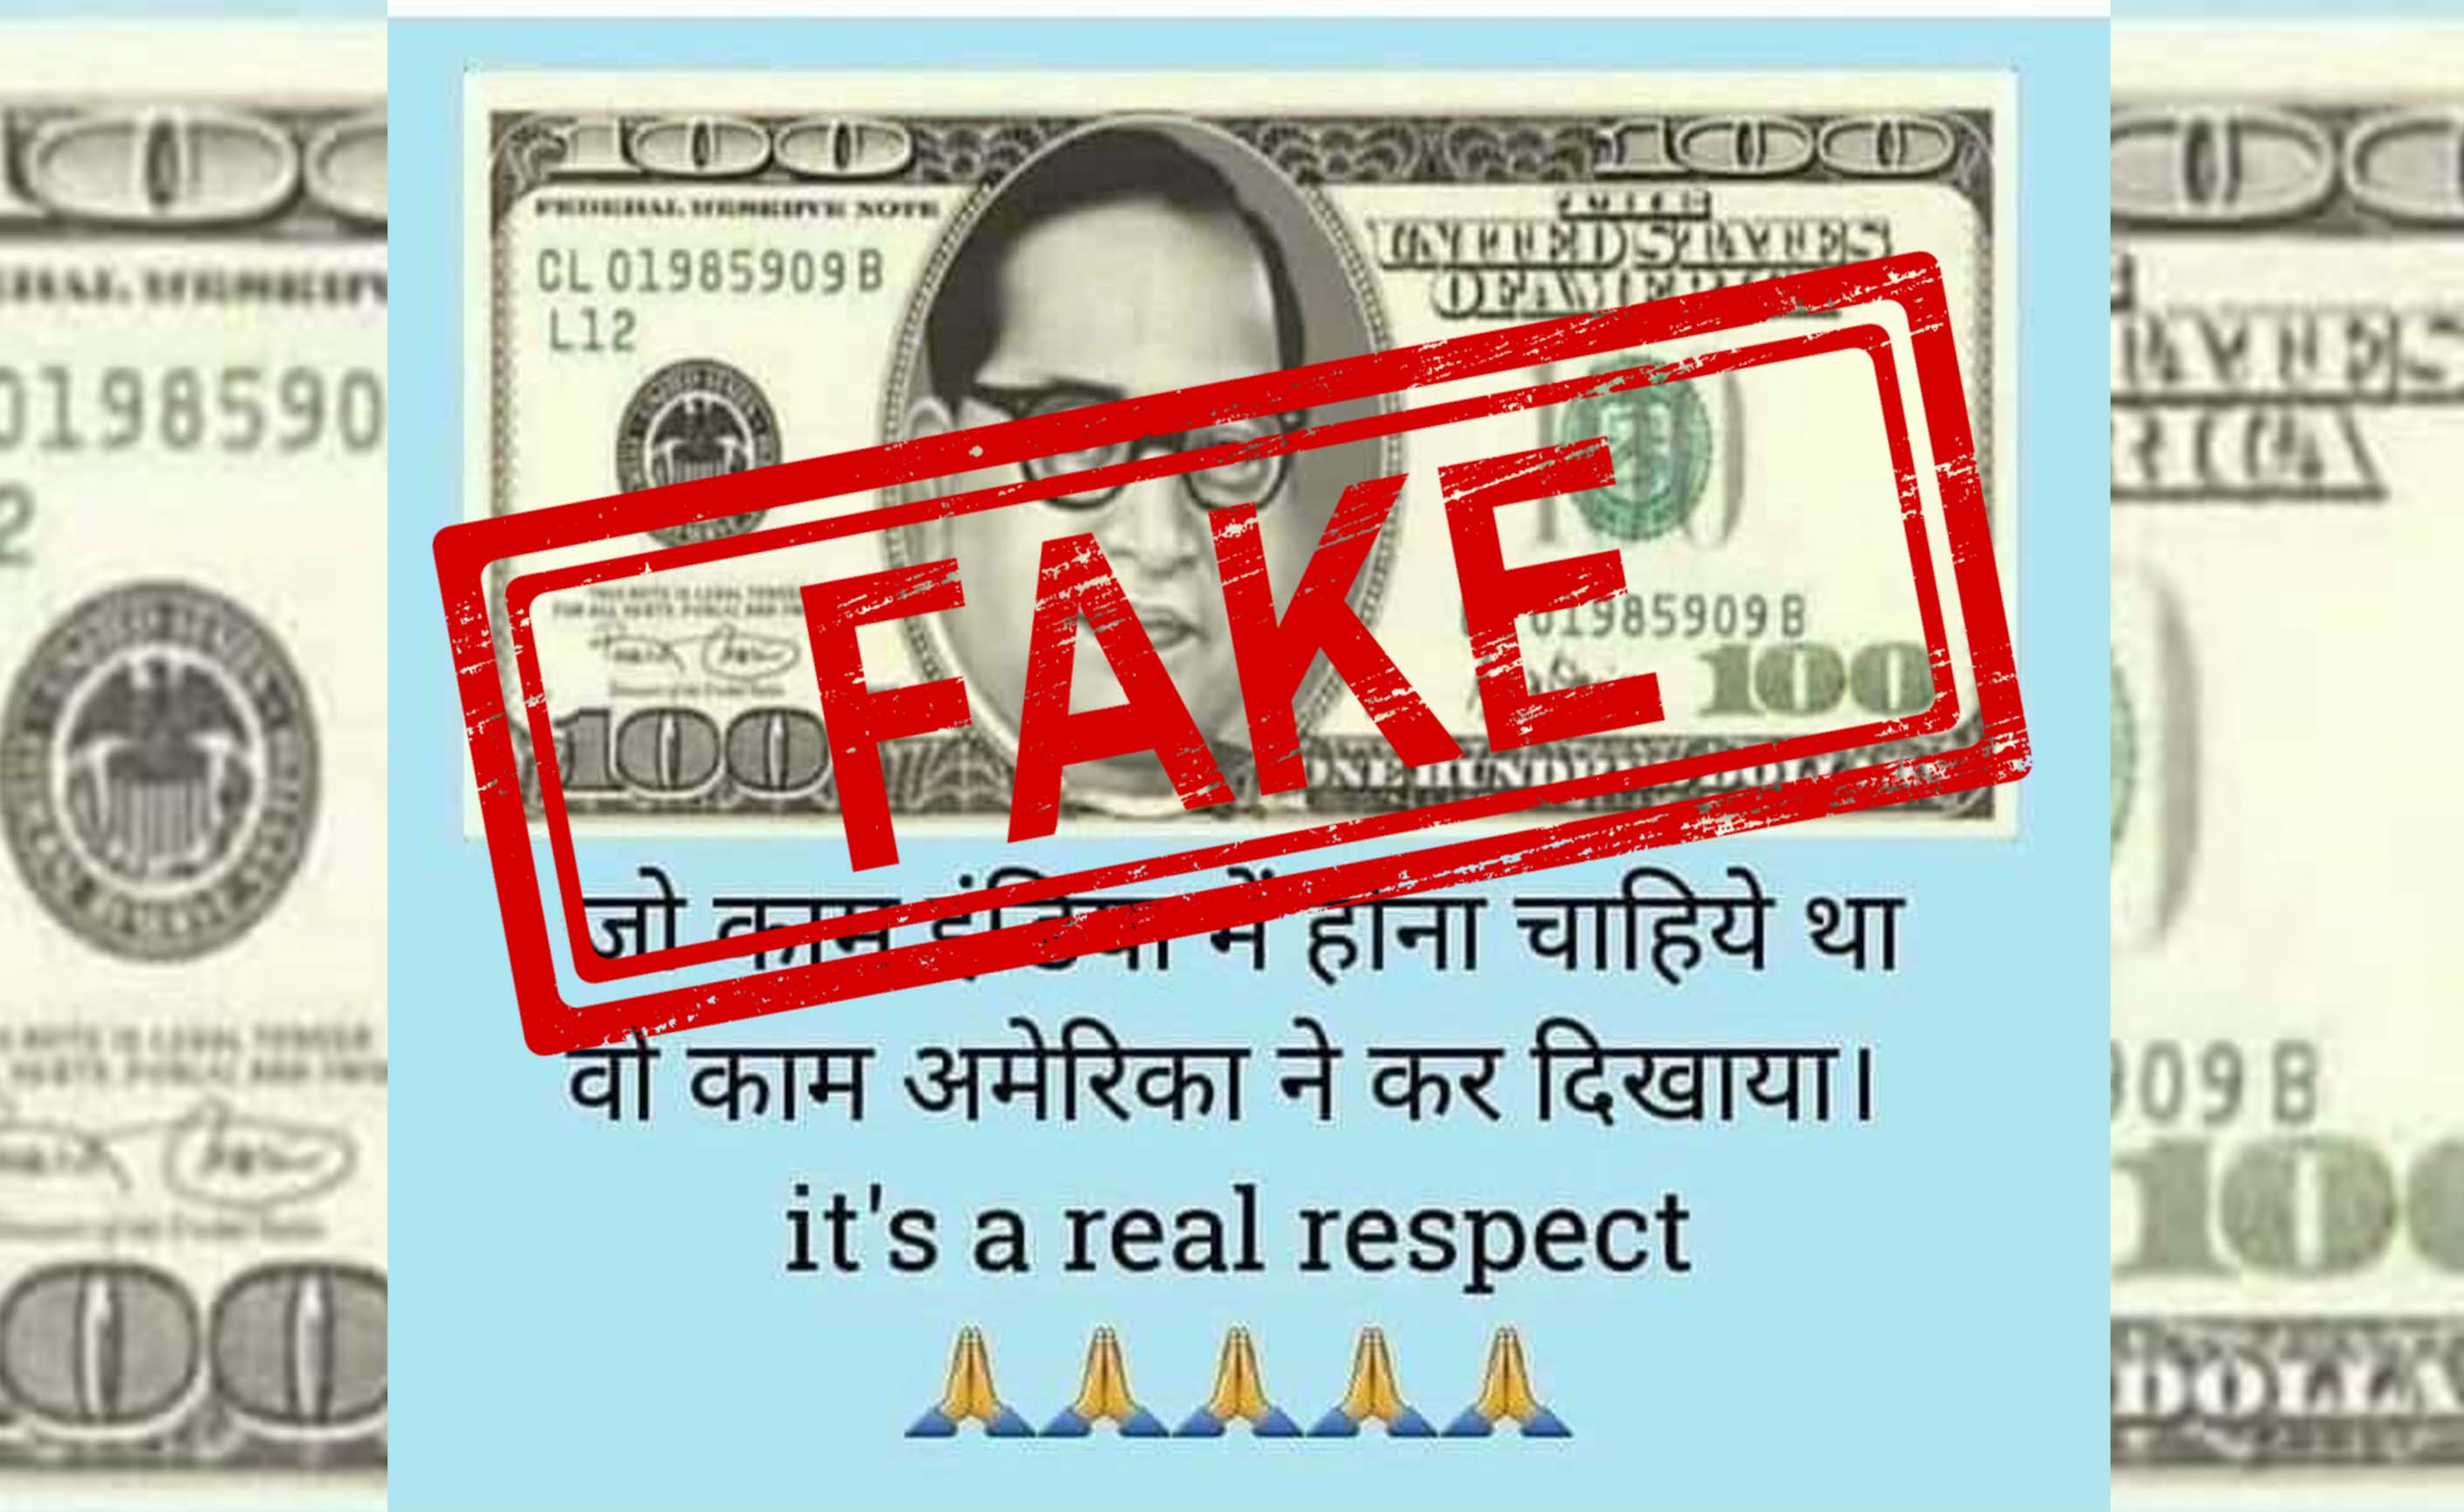 Ambedkar, $100, Note, Fact Check, Fact Checker, Fake, News, Mobile, NewsMobile